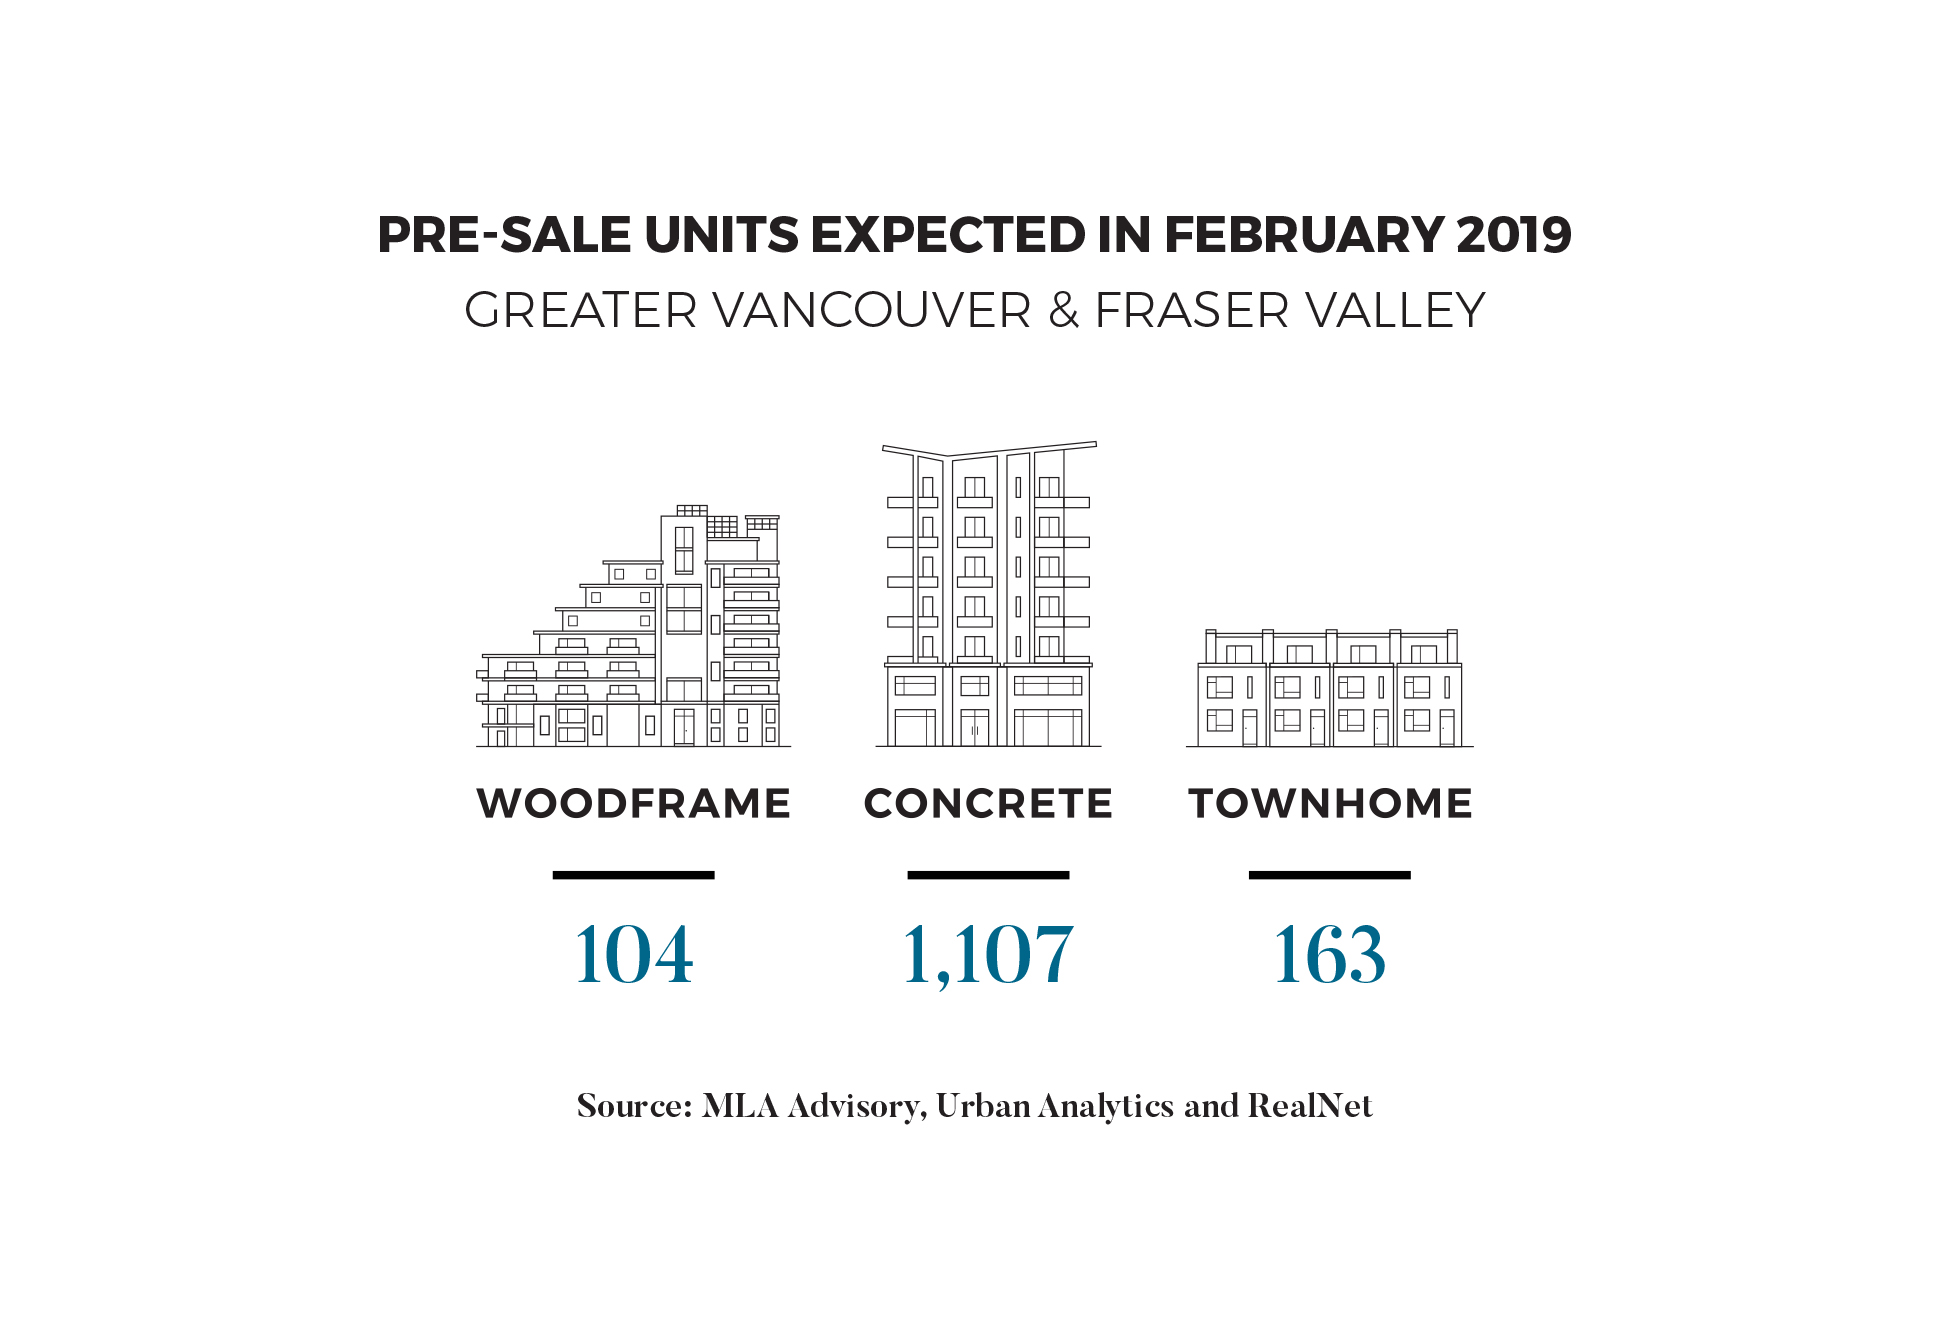 February 2019 Pre-Sale Unit Forecast